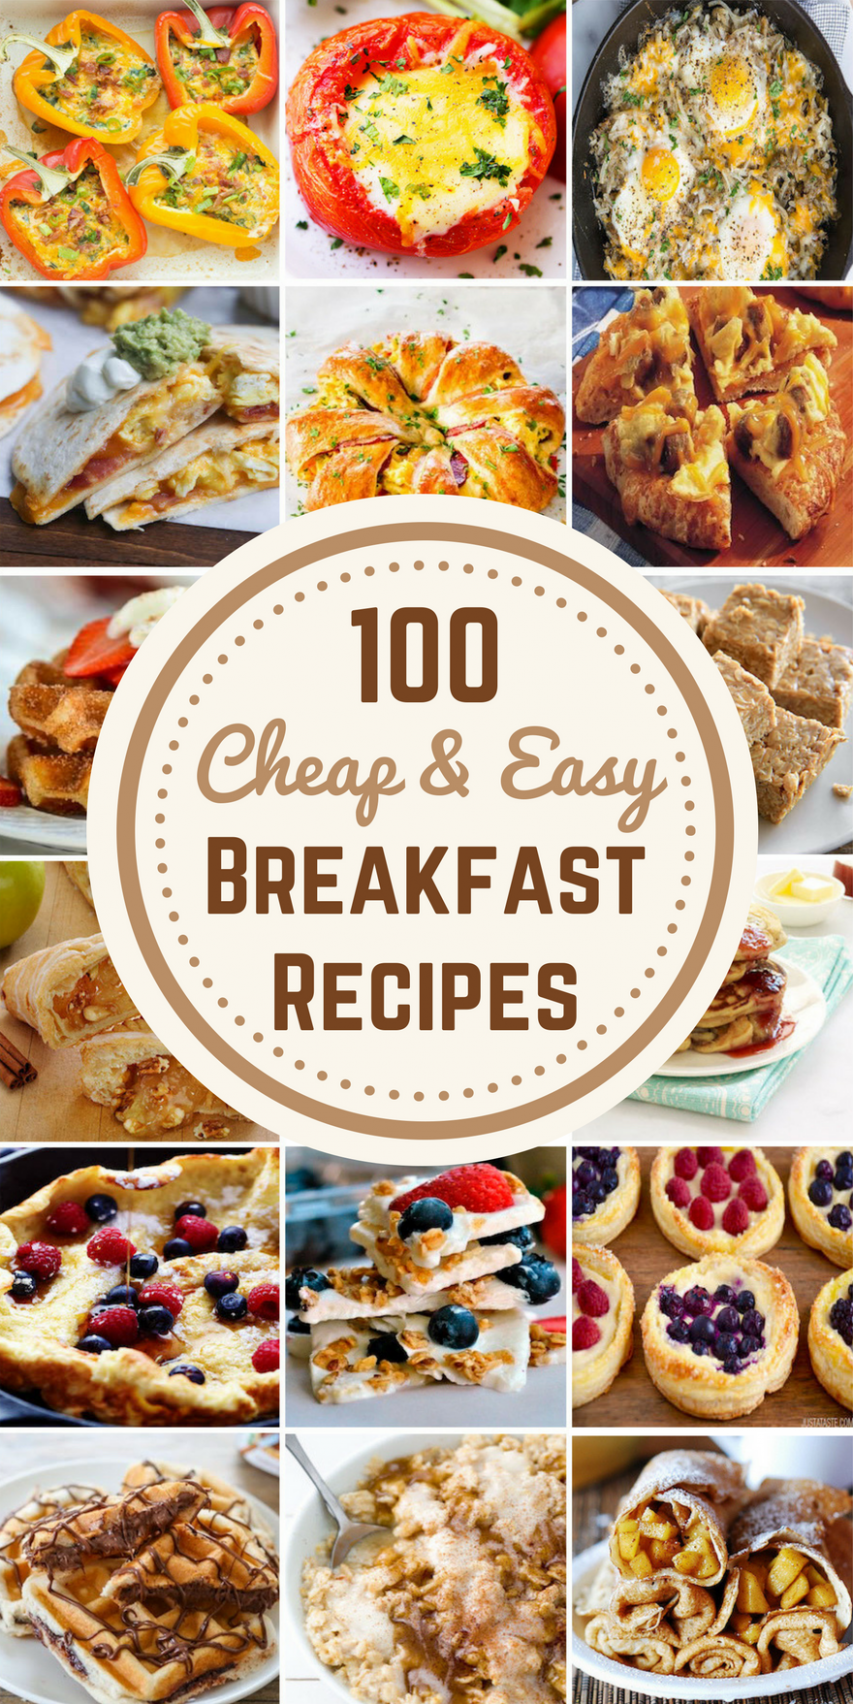 10 Cheap & Easy Breakfast Recipes - Prudent Penny Pincher - Breakfast Recipes Cheap